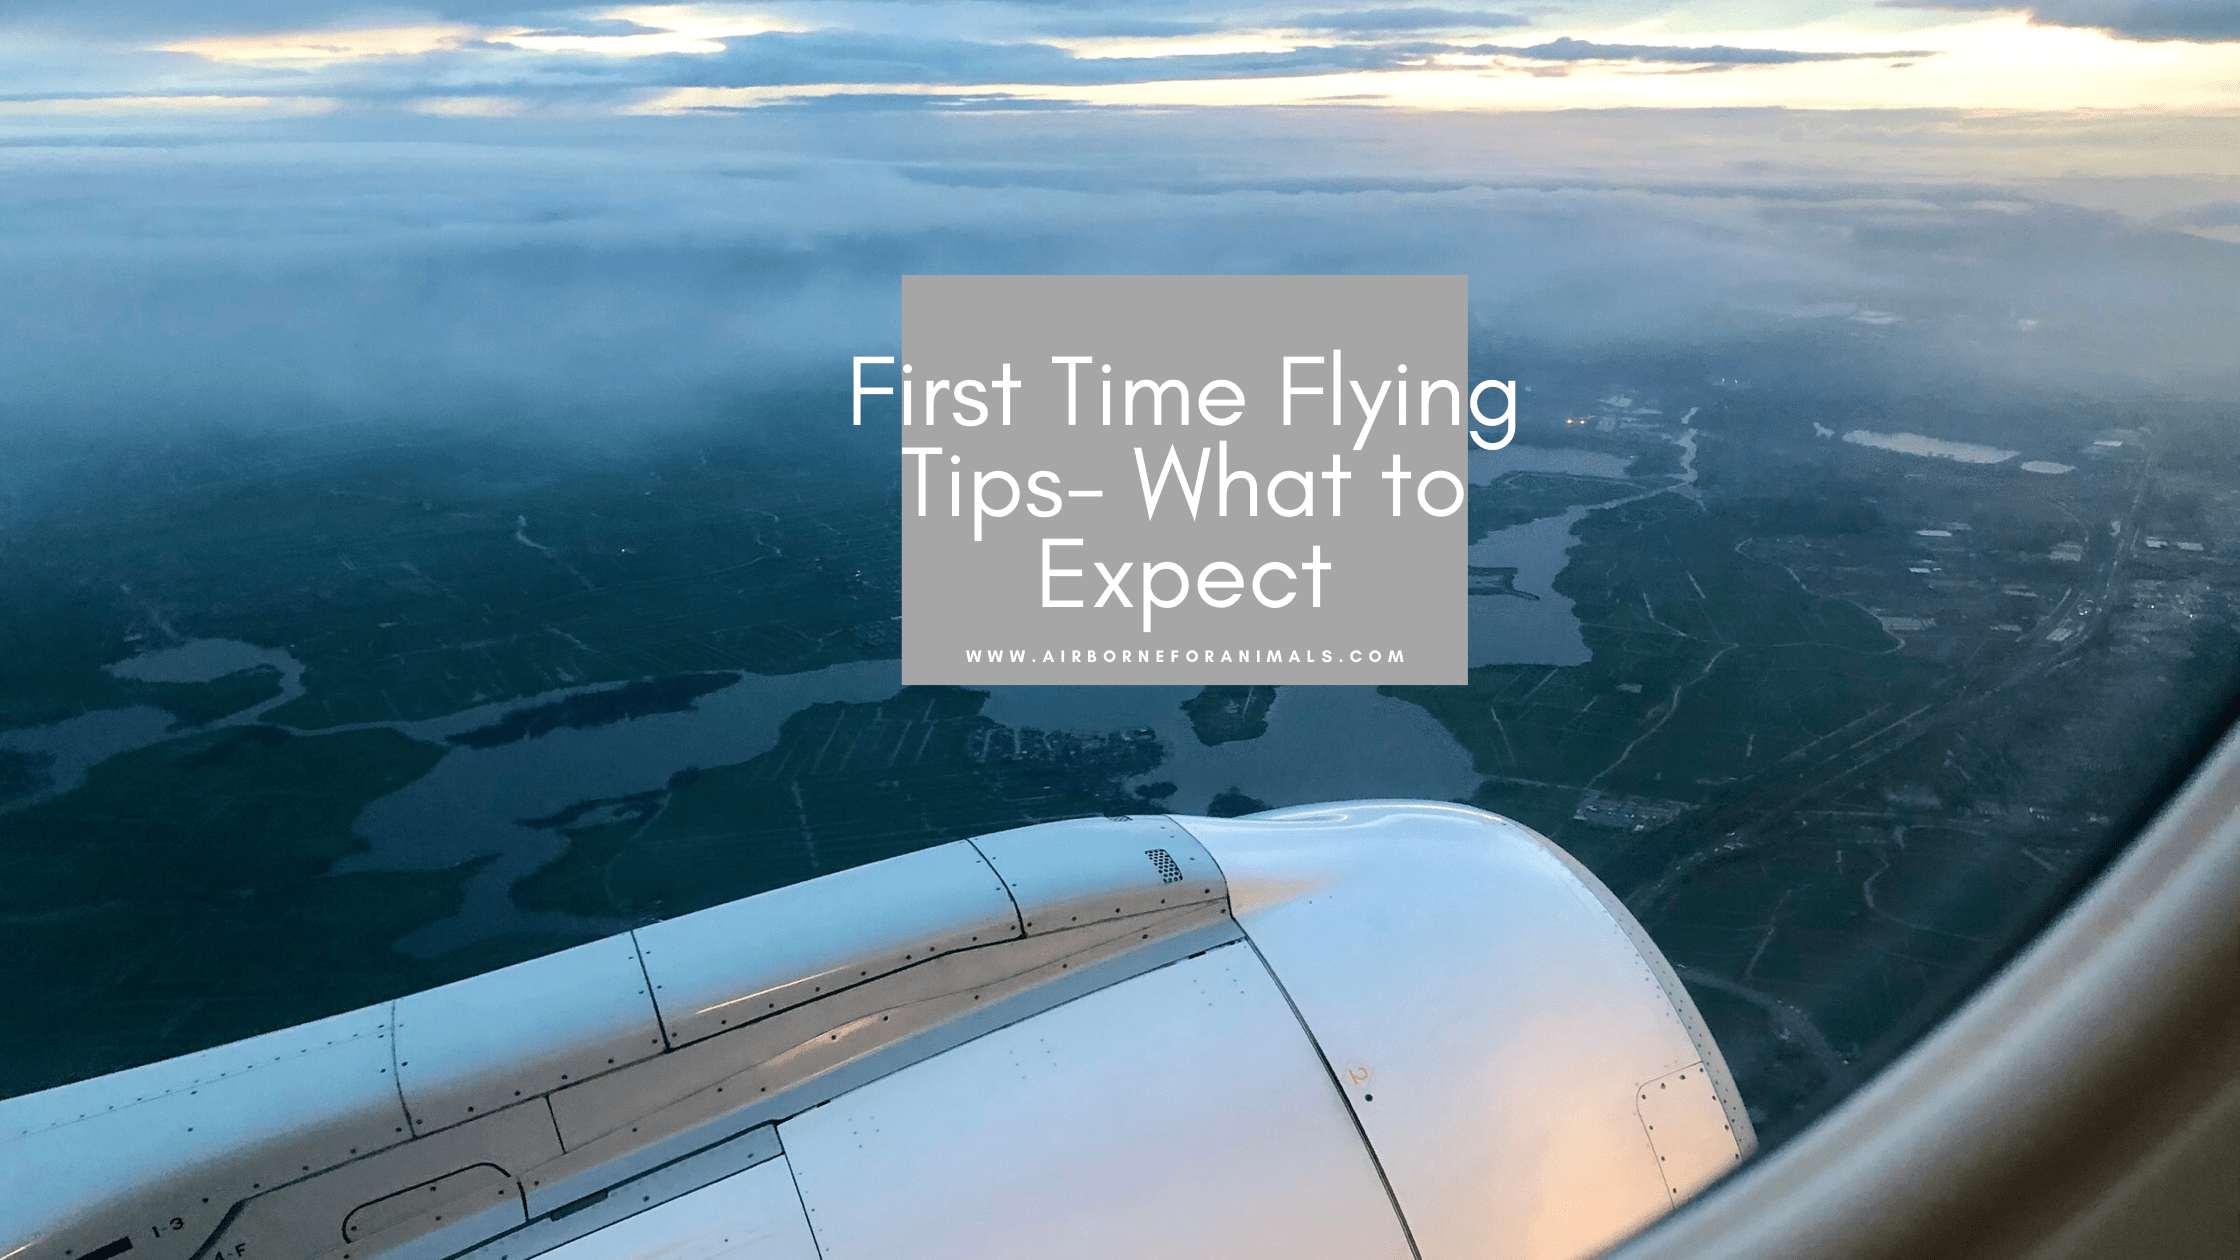 First Time Flying Tips – What to Expect via @airborneforanimals